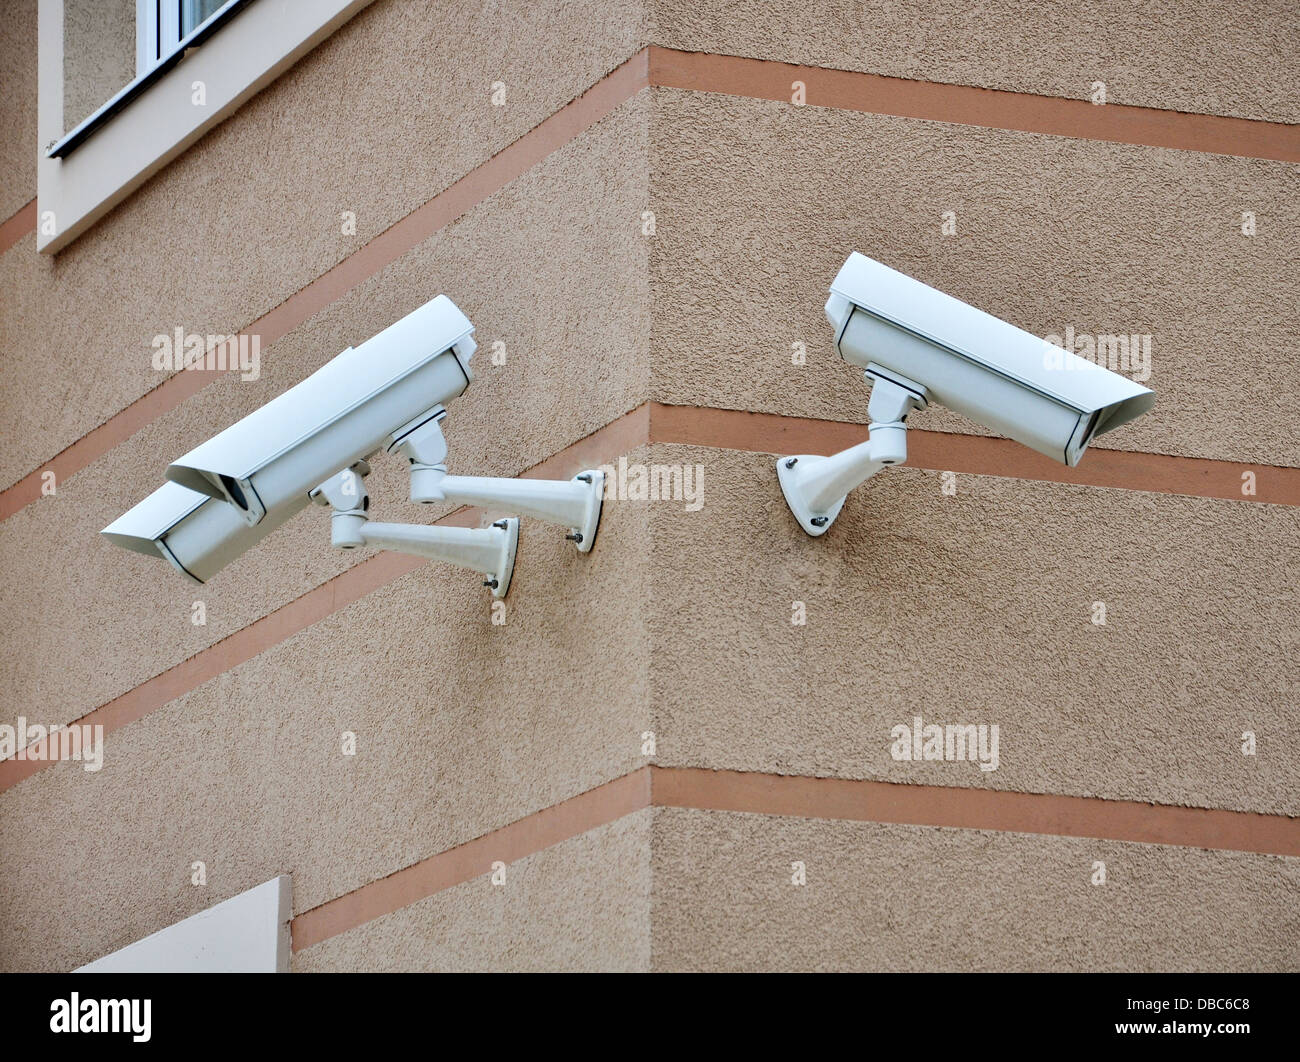 CCTV cameras on the cone of the morden building Stock Photo